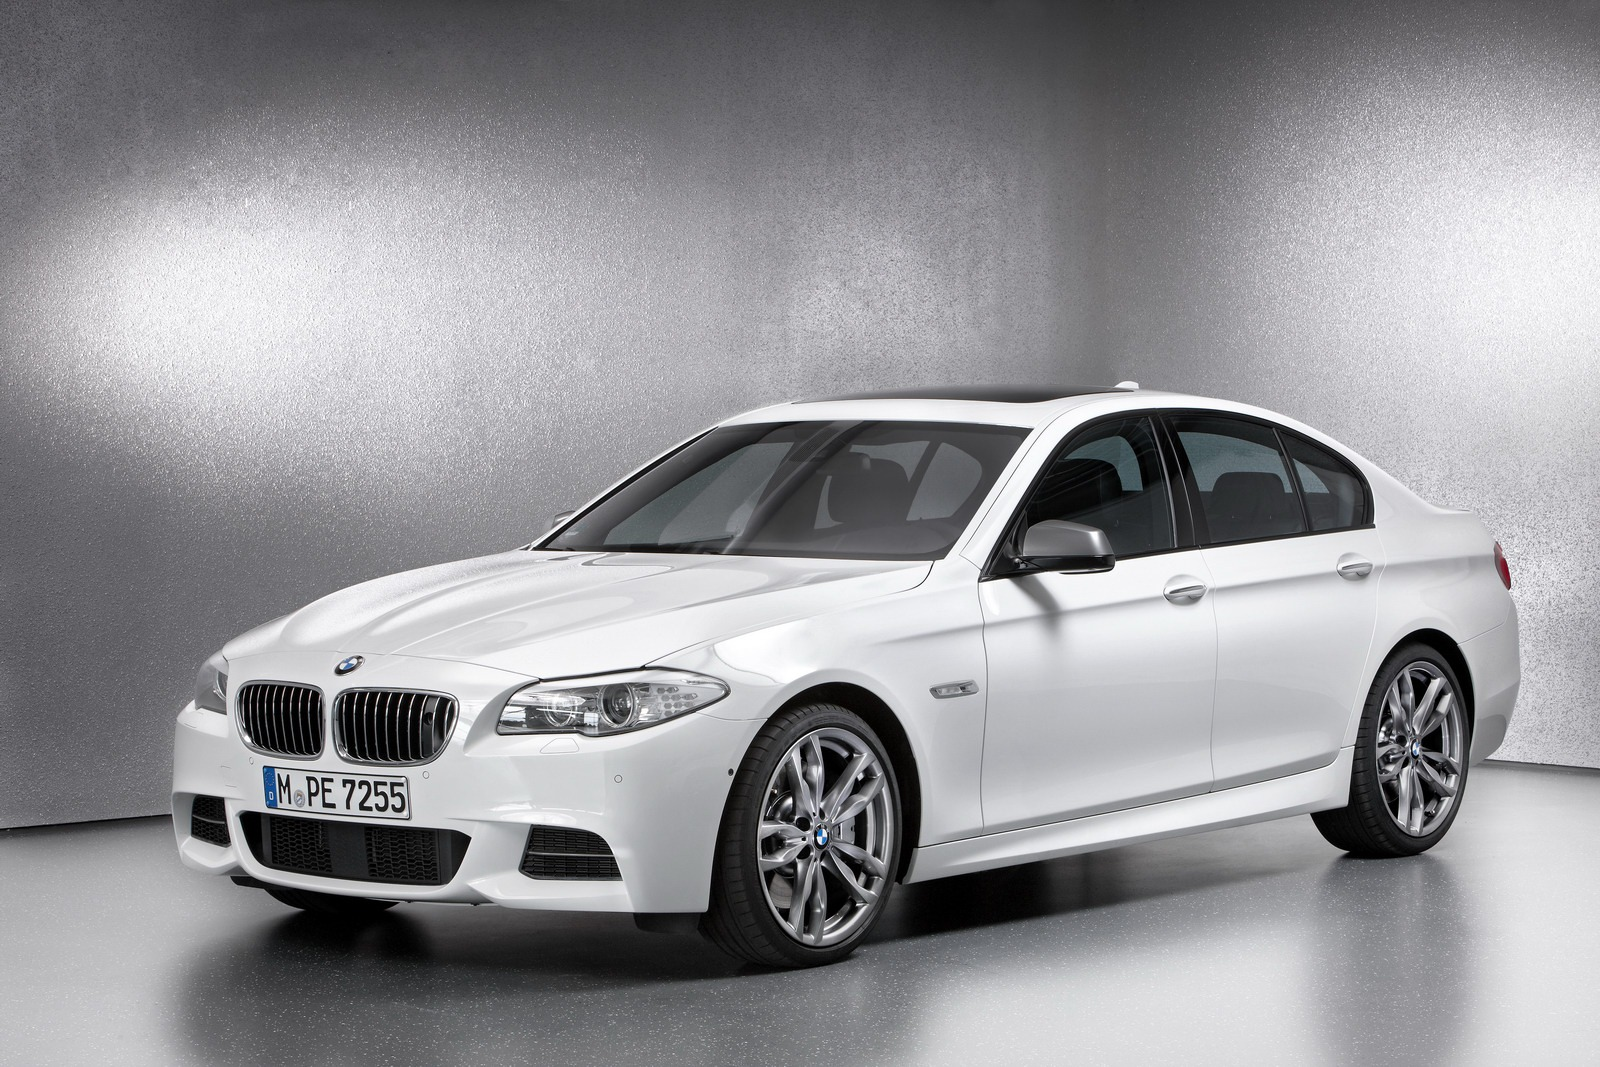 BMW M550d 12 M550d xDrive Touring, X5 M50d and X6 M50d to Be Launched by BMW